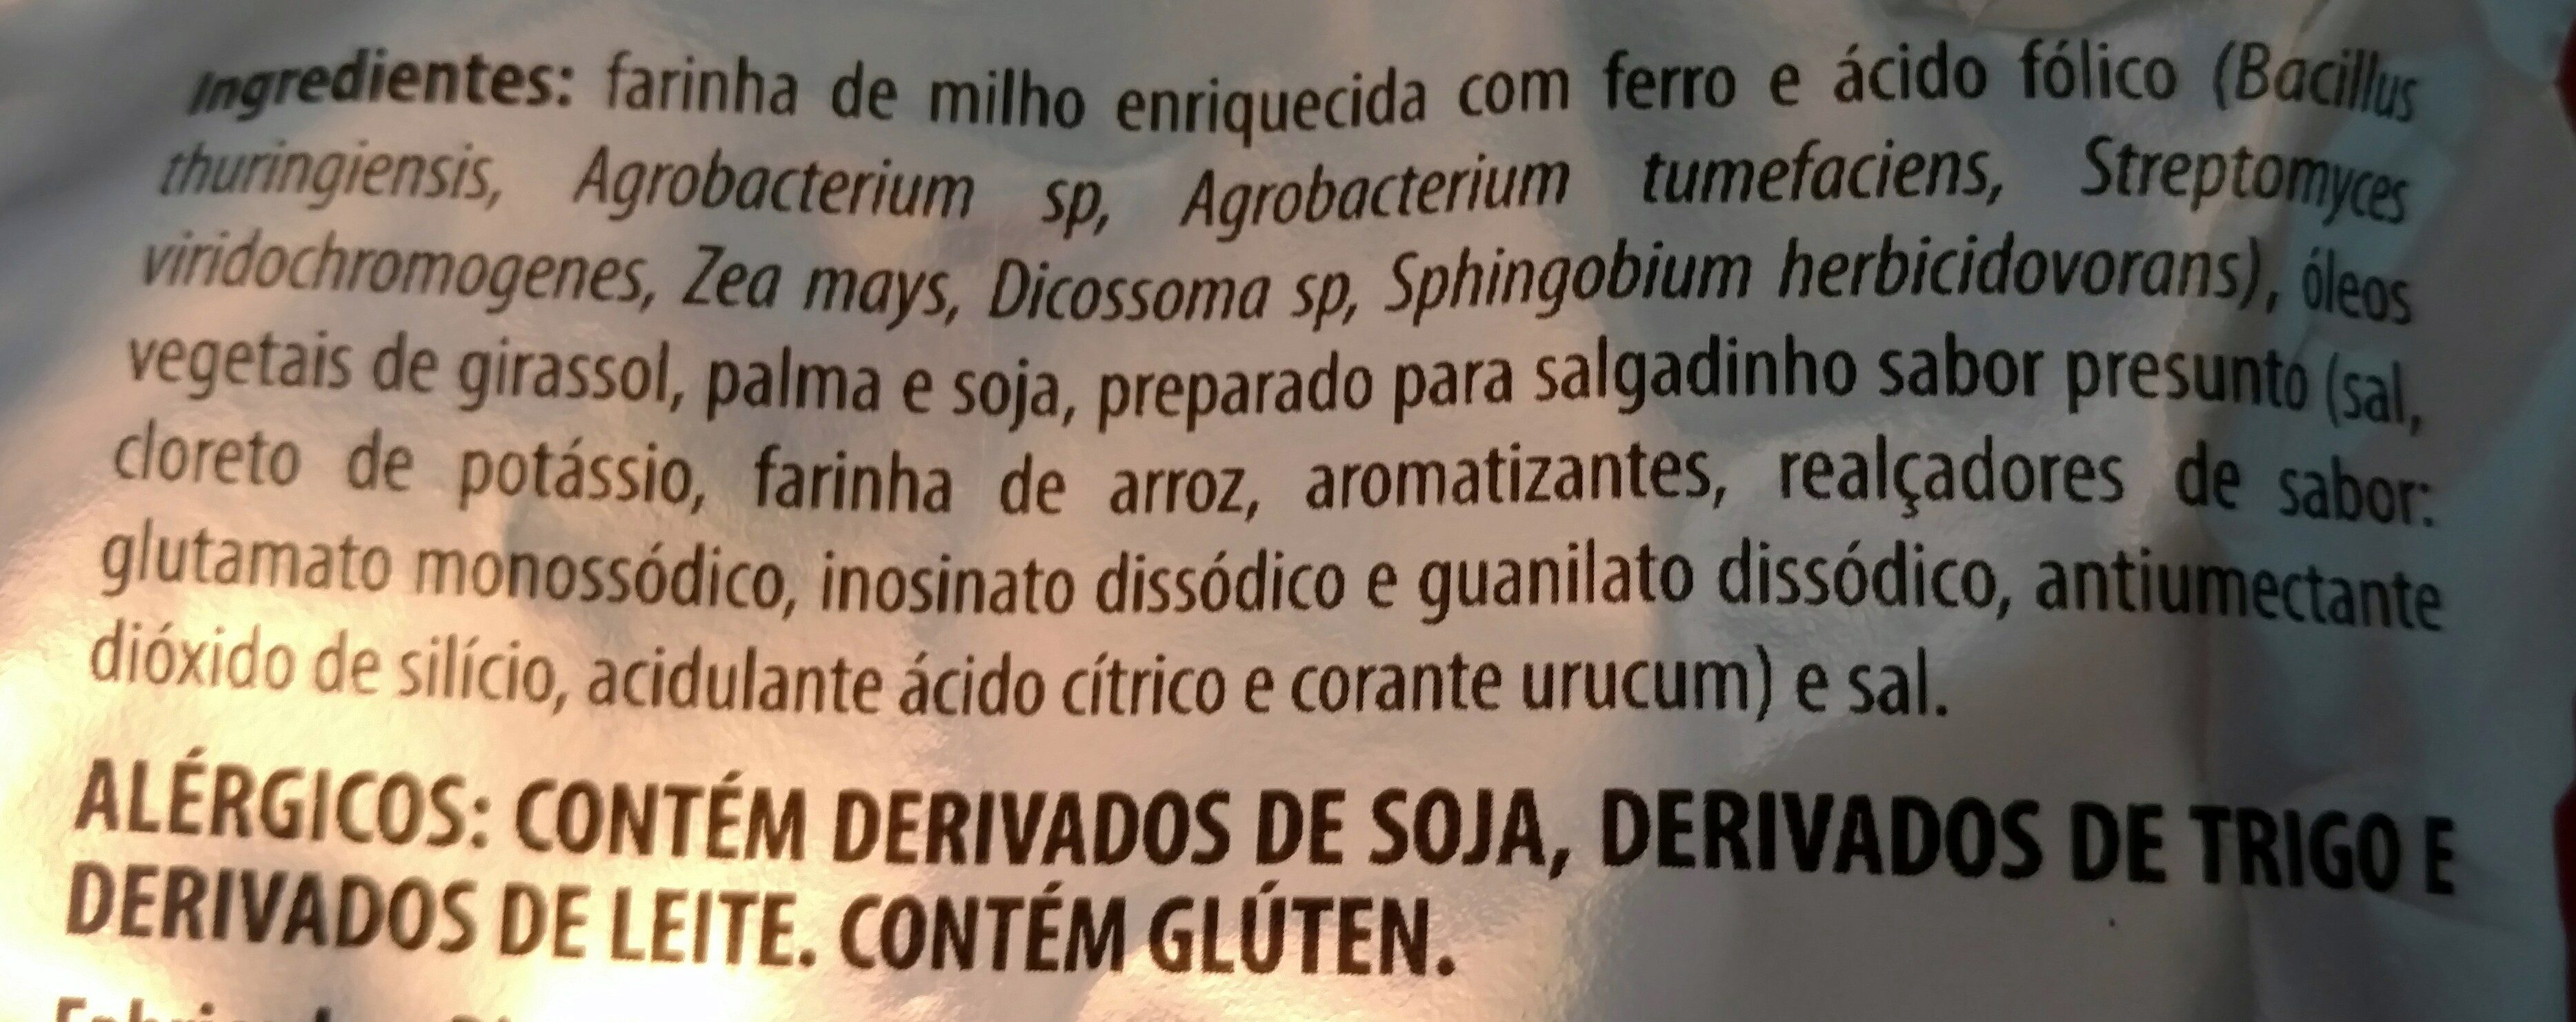 Fandangos sabor presunto - Ingredients